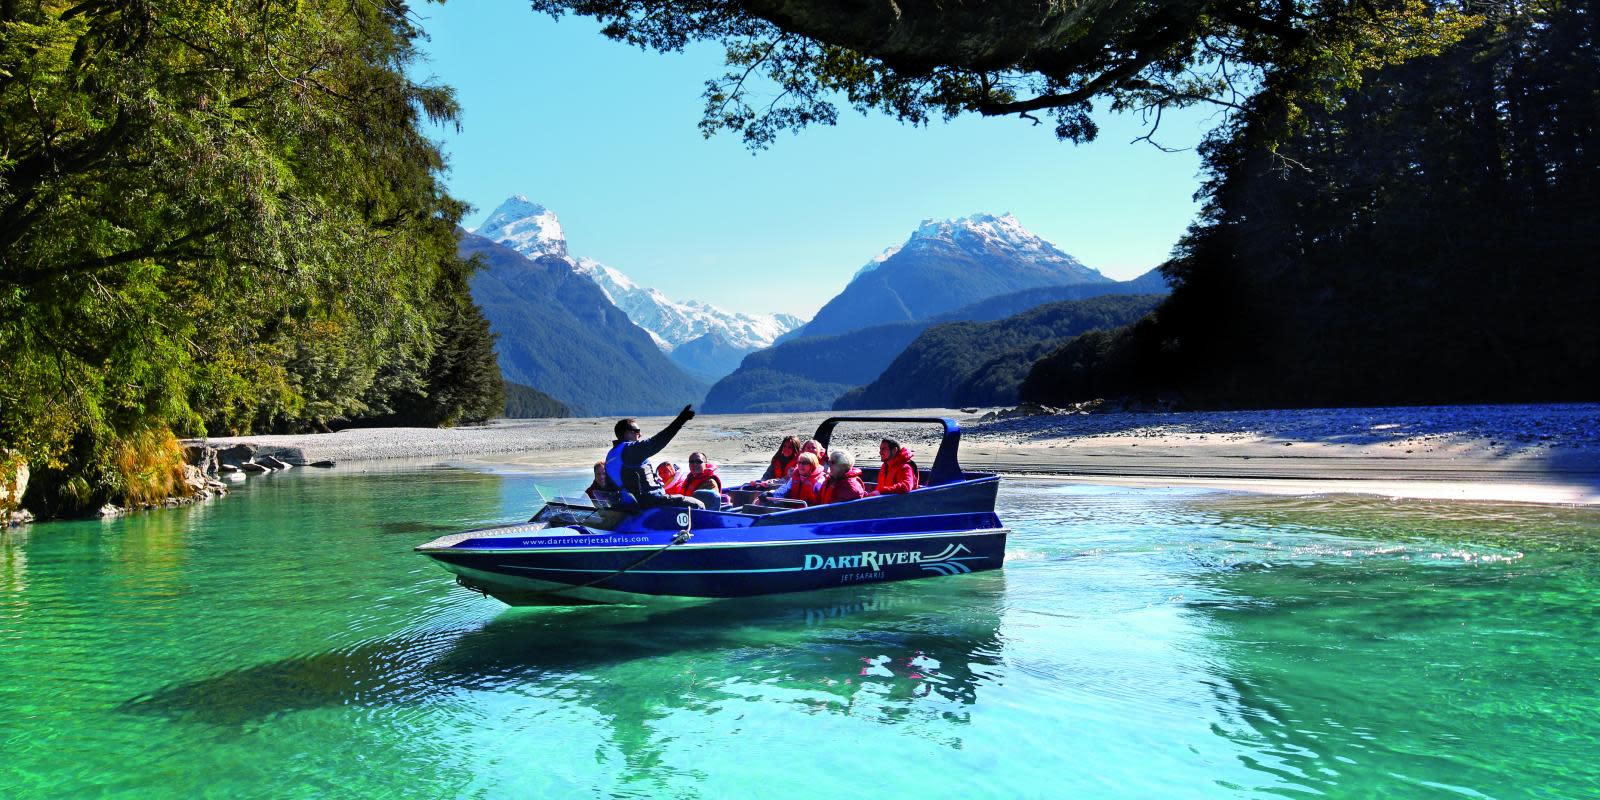 Dart River Jet Boat Wilderness Experience Queenstown